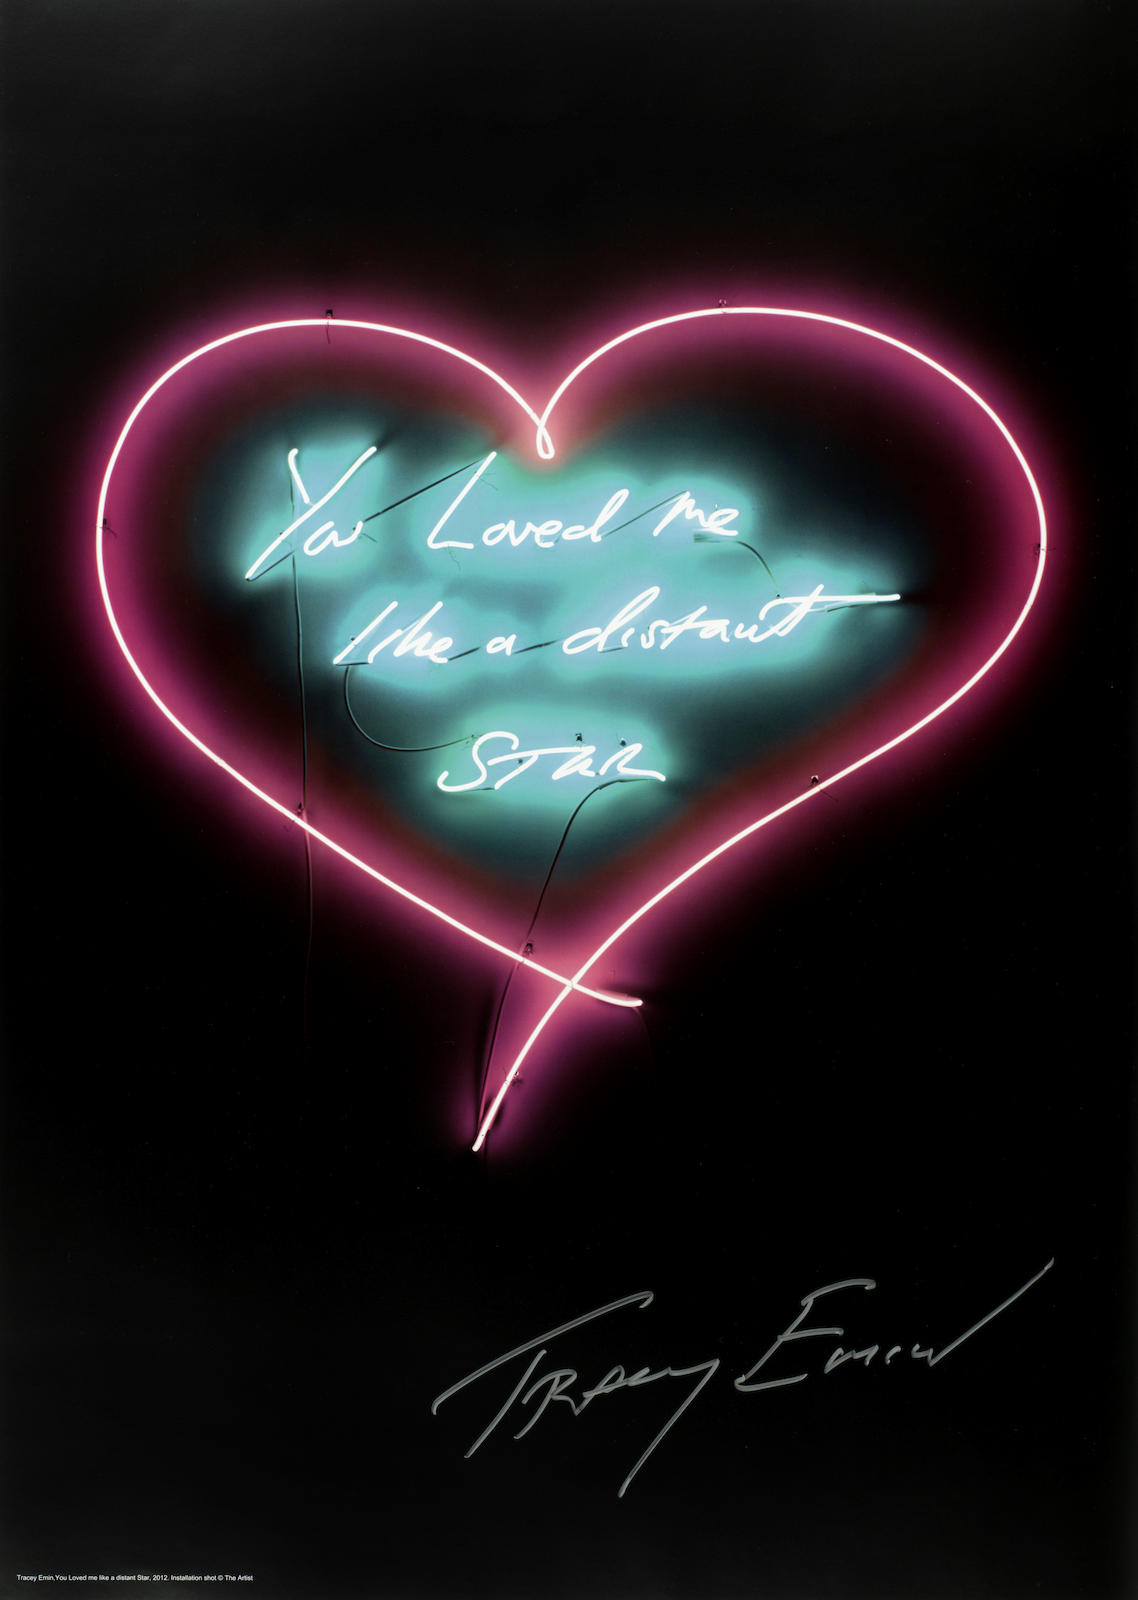 Tracey Emin-You Loved Me Like A Distant Star-2012